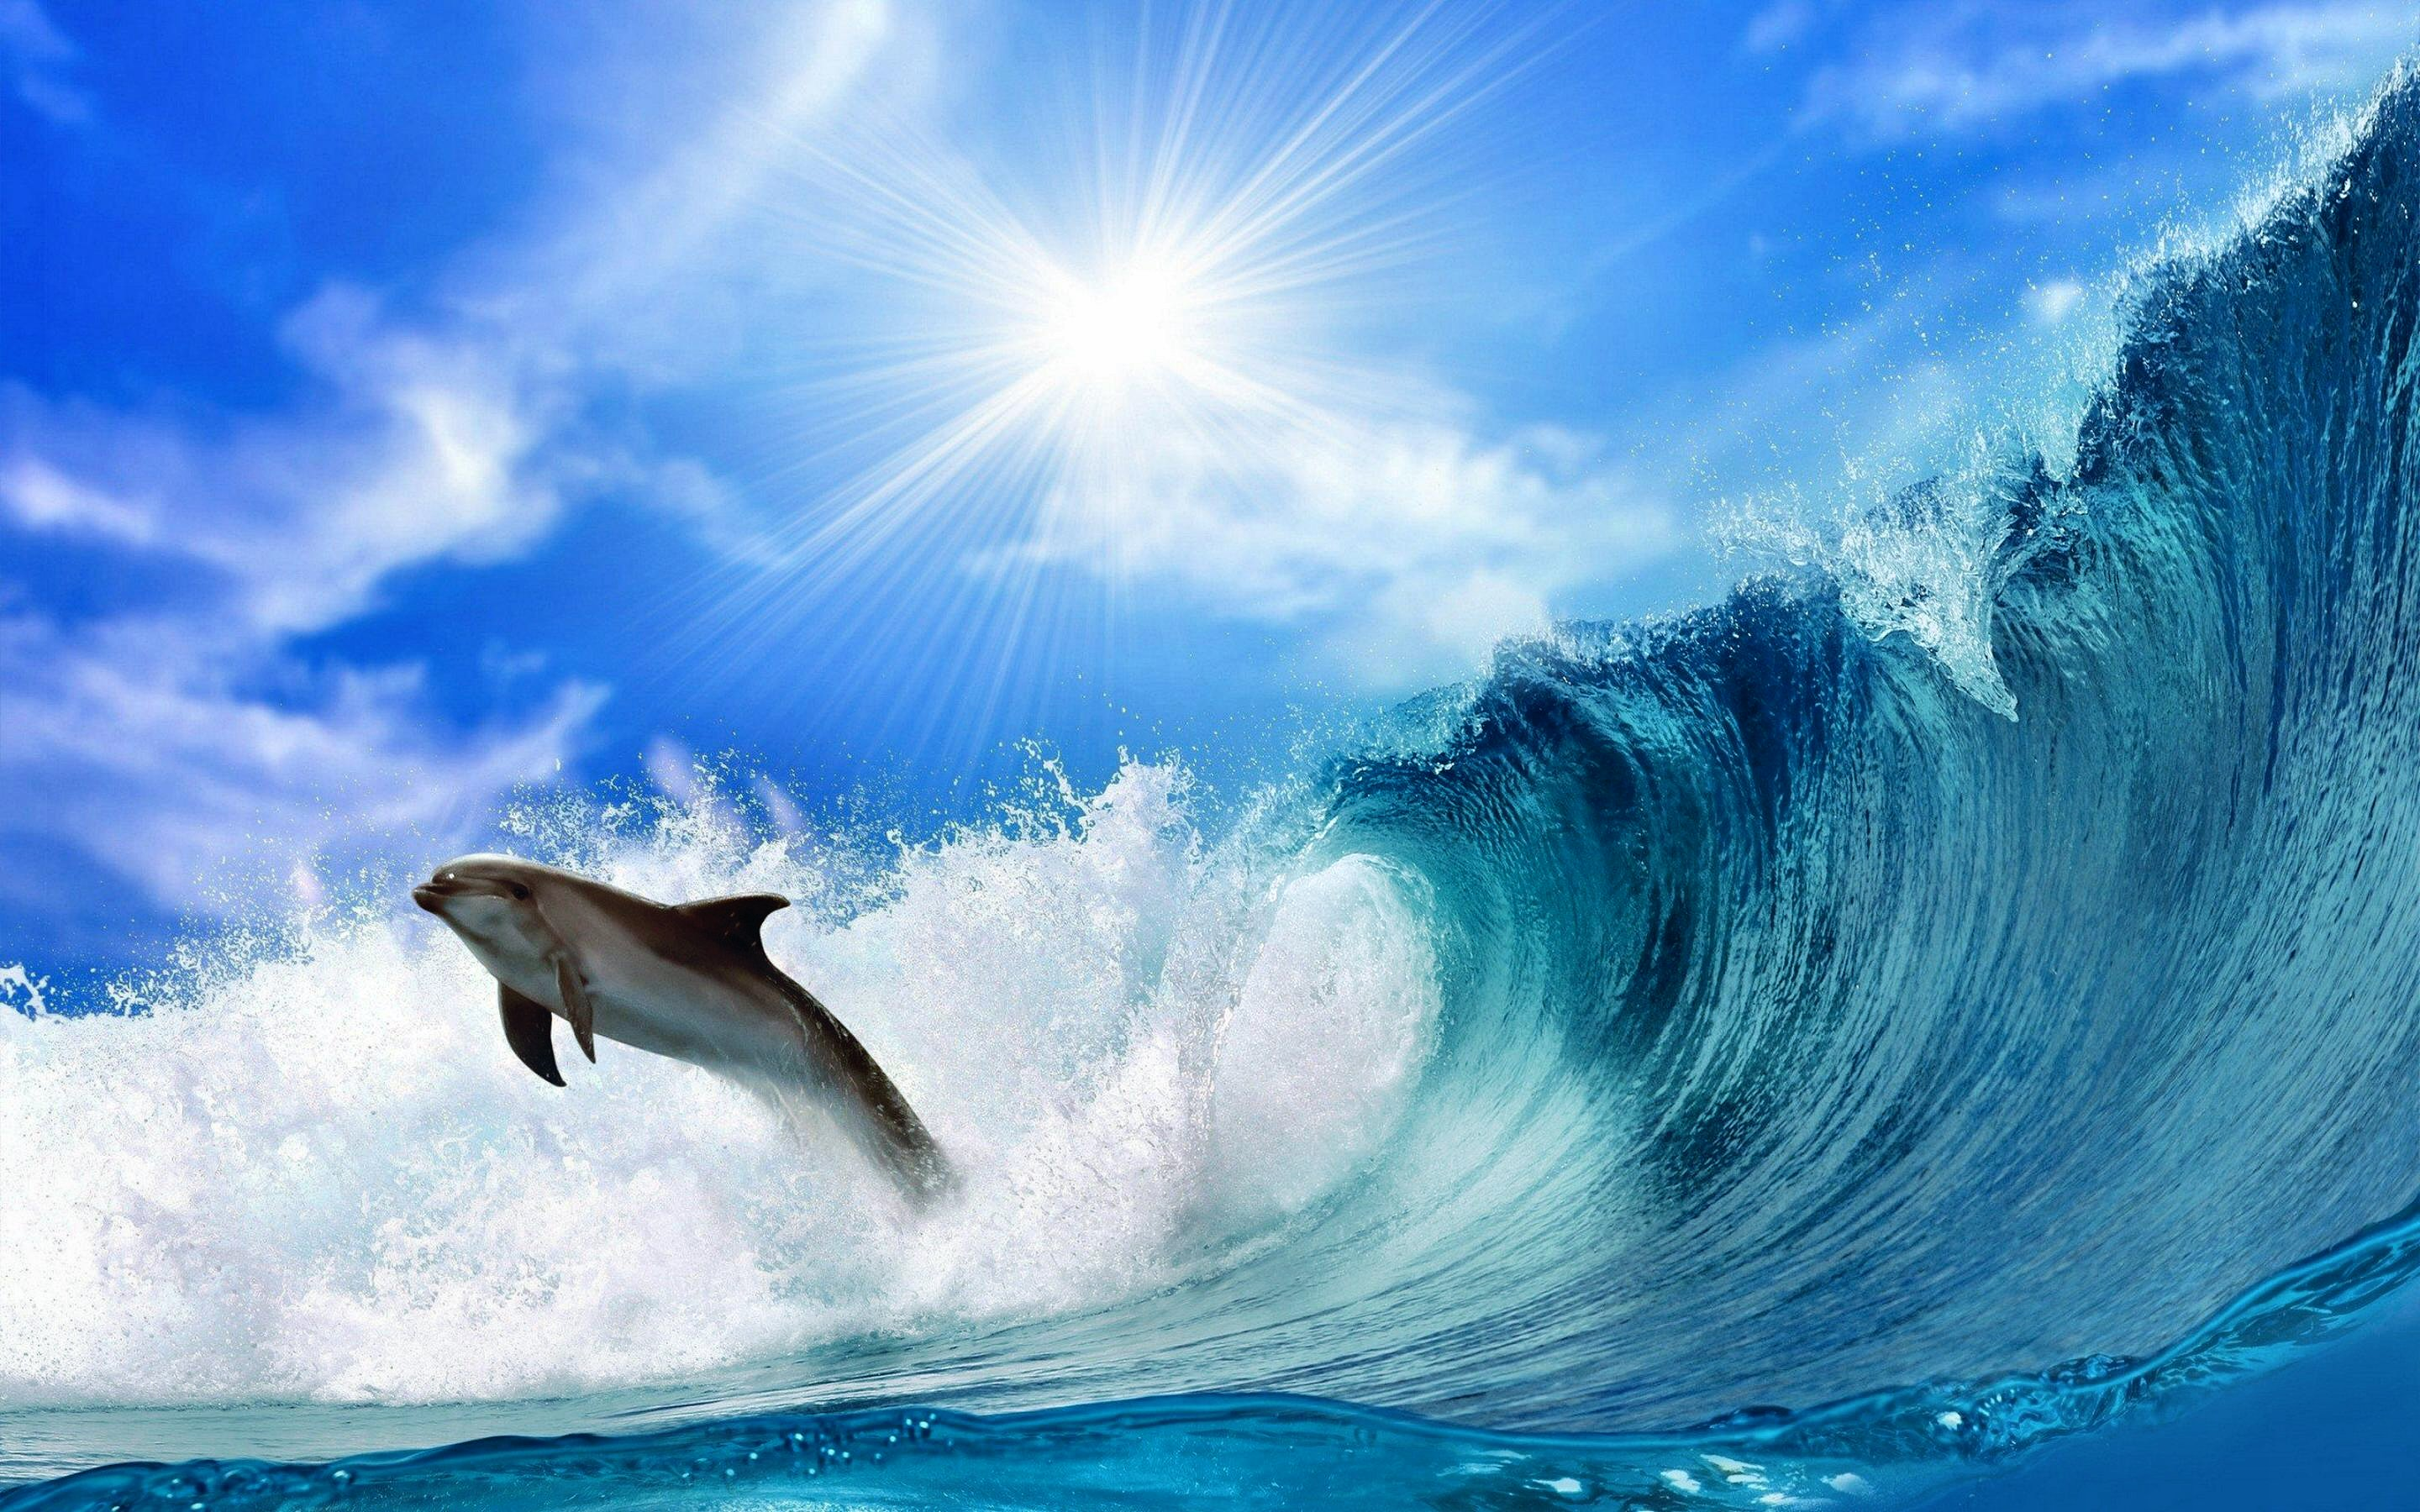 800 wave hd wallpapers | background images - wallpaper abyss